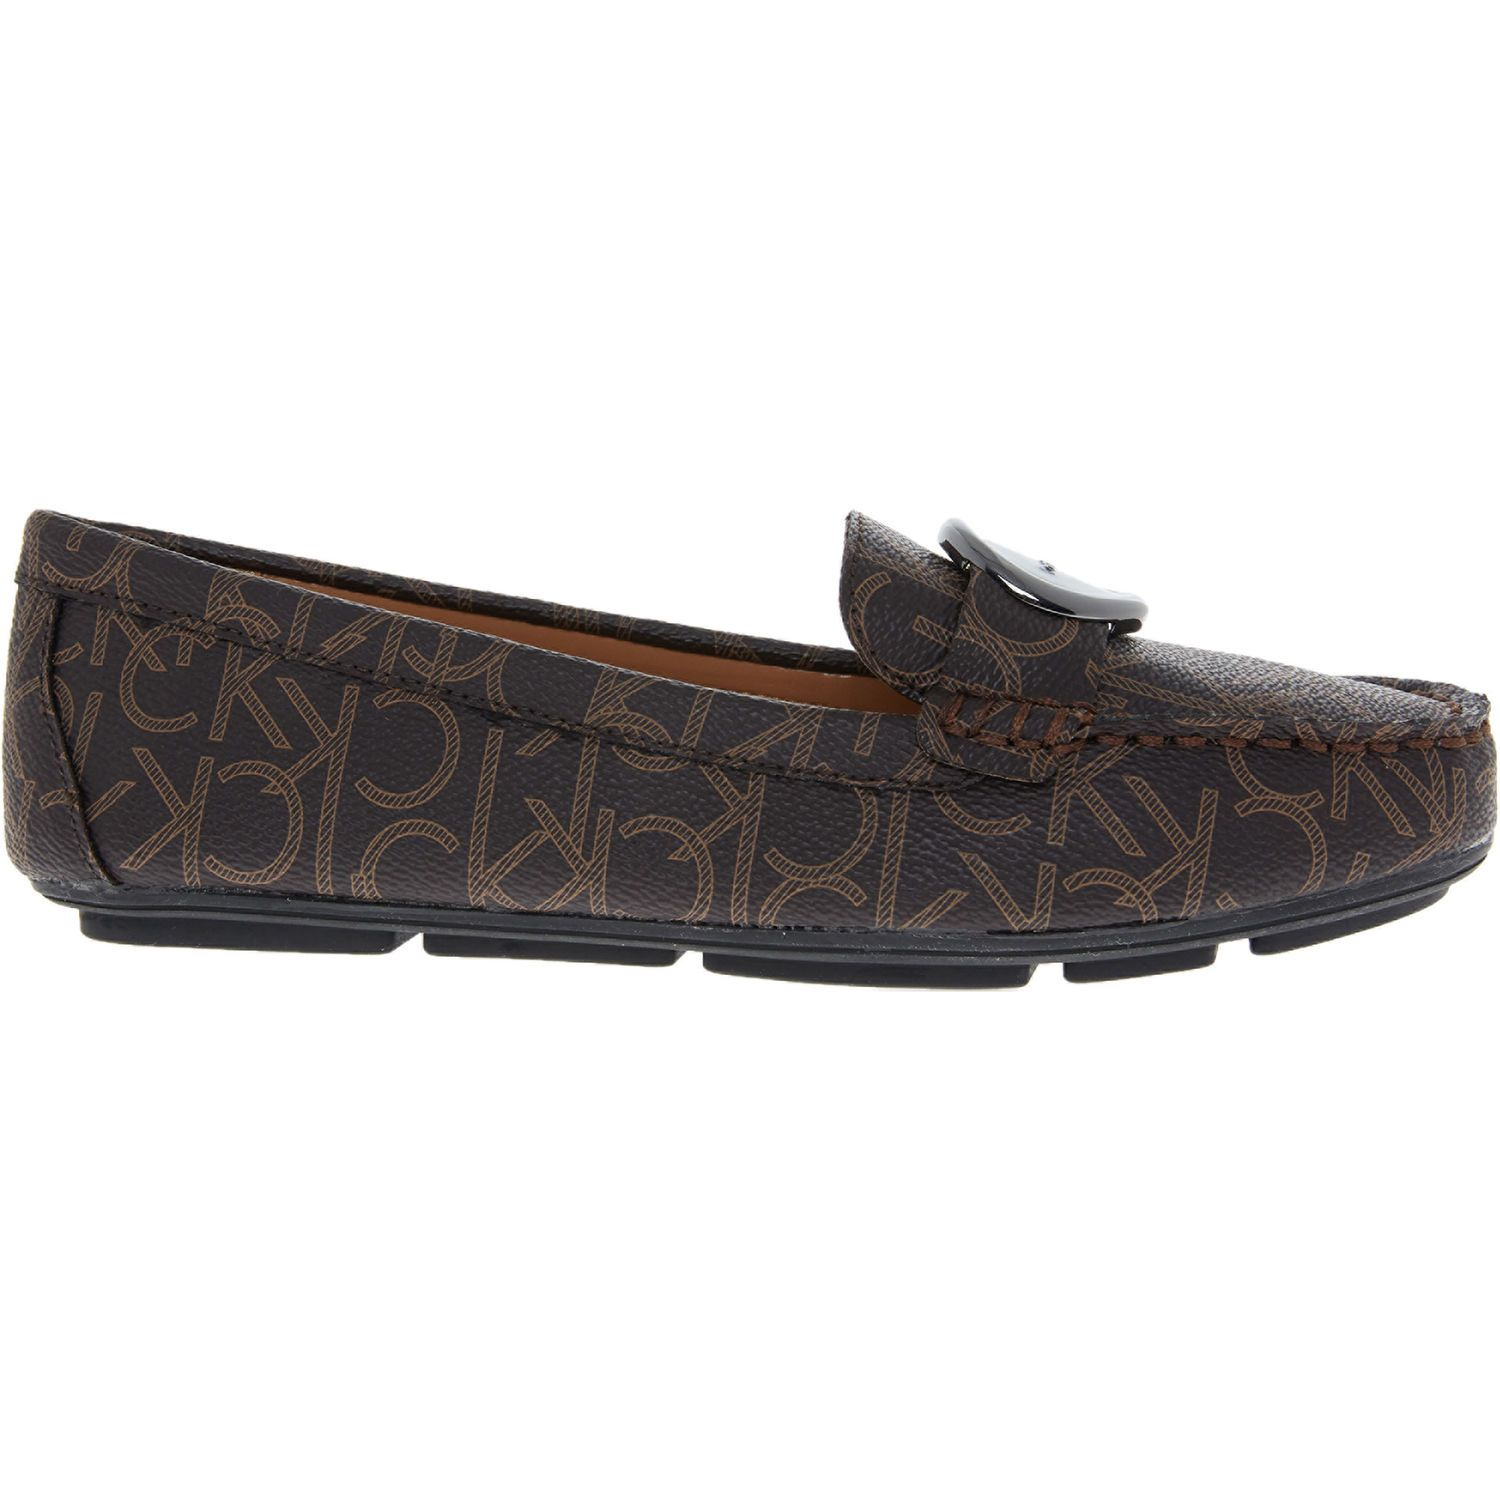 new authentic the latest finest selection Brown Branded Logo Loafers - Women's Early Access - Event Category ...